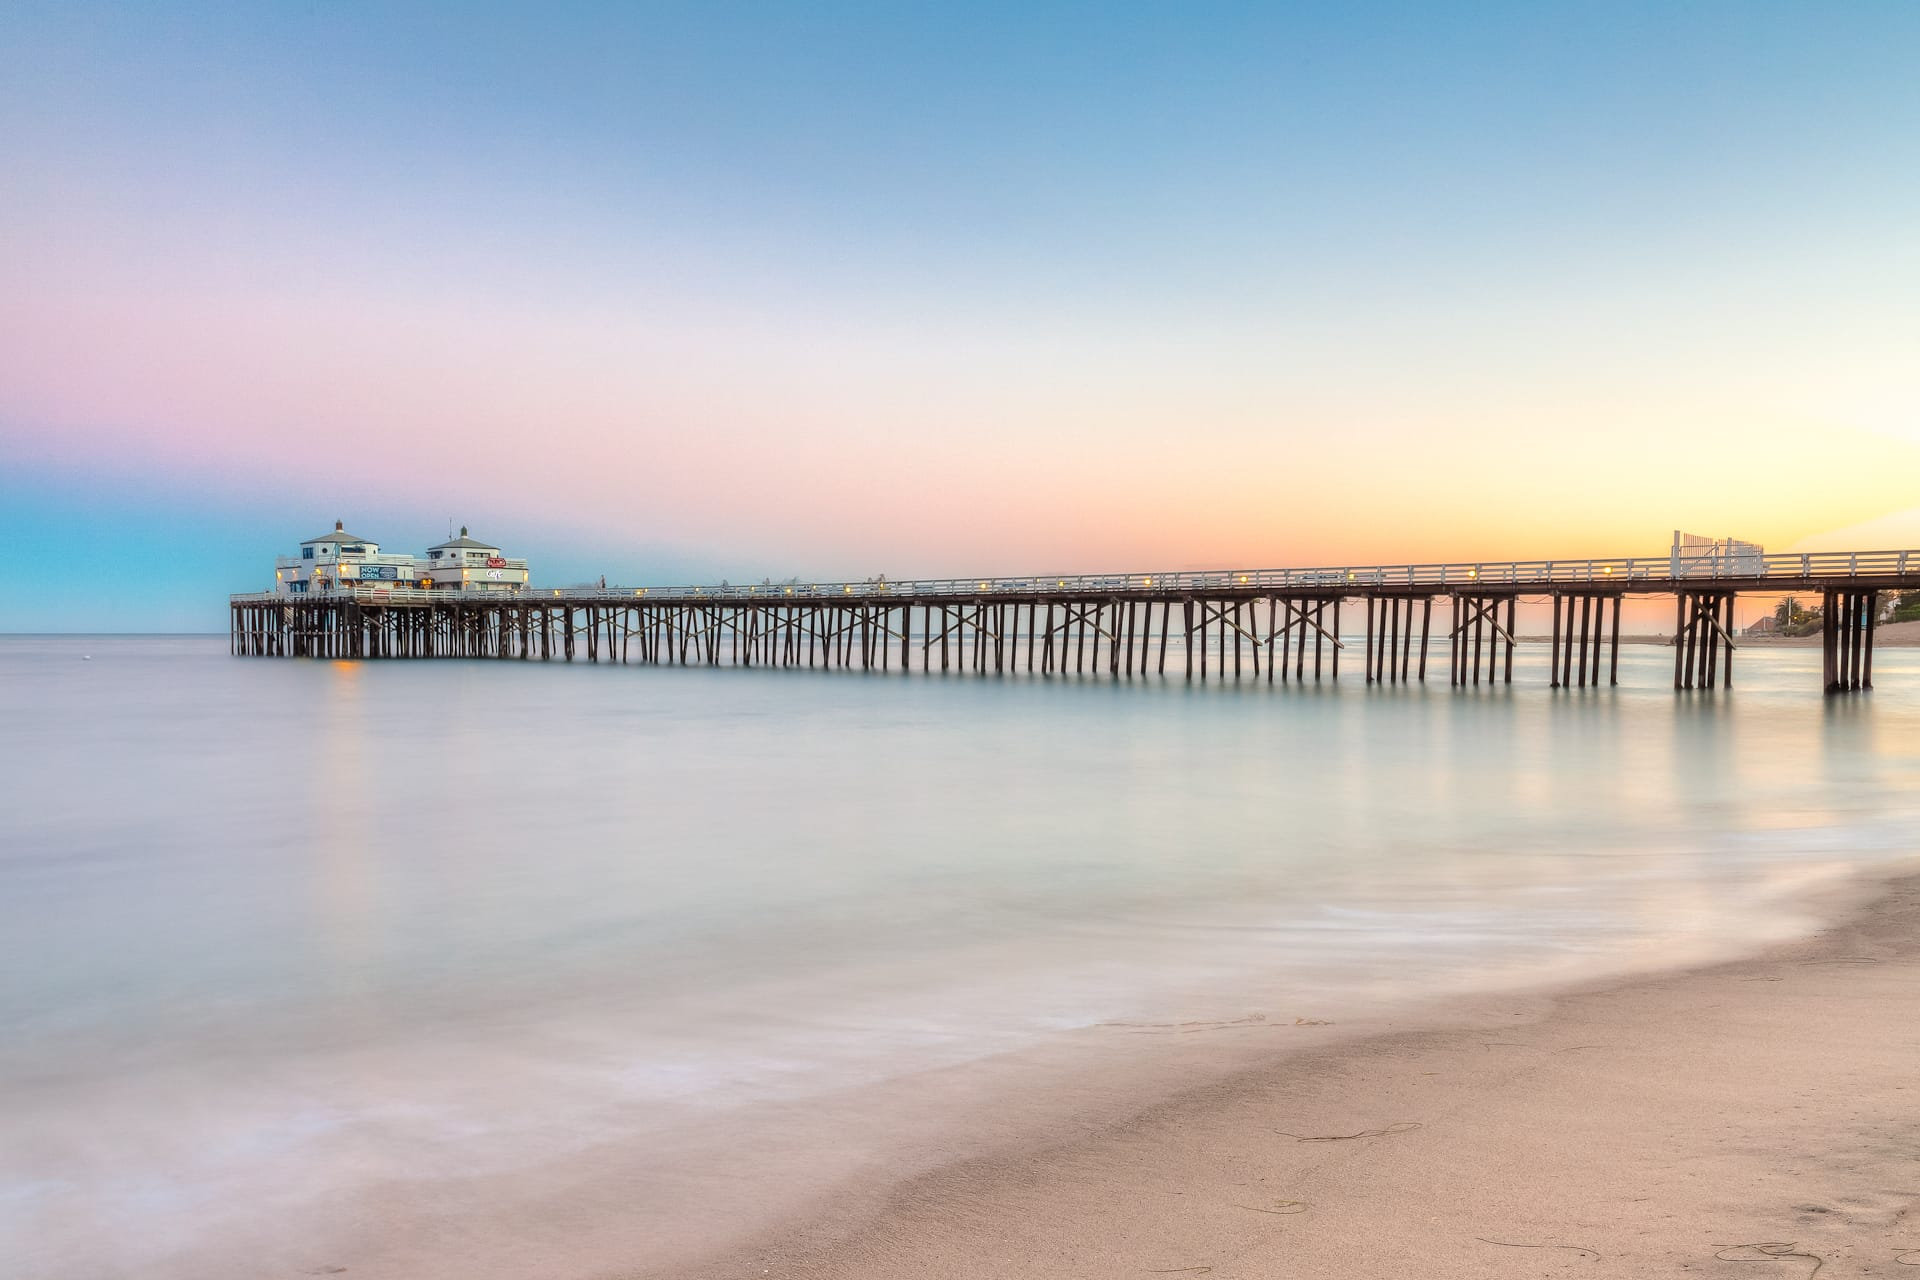 Malibu Pier Sunset HDR